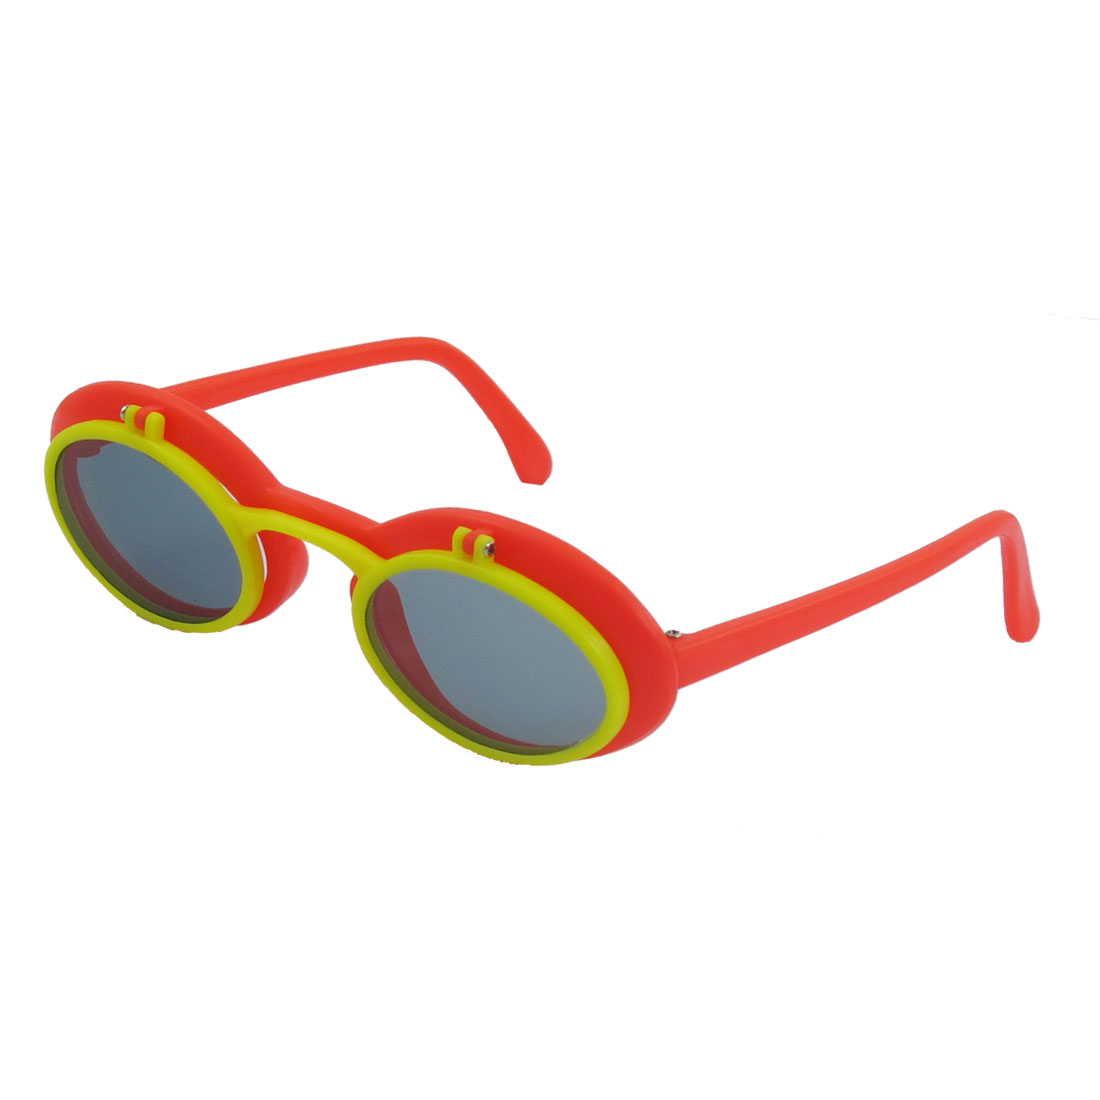 Full Frame Orange Red Arms Dual Layer Plastic Sunglasses for Children